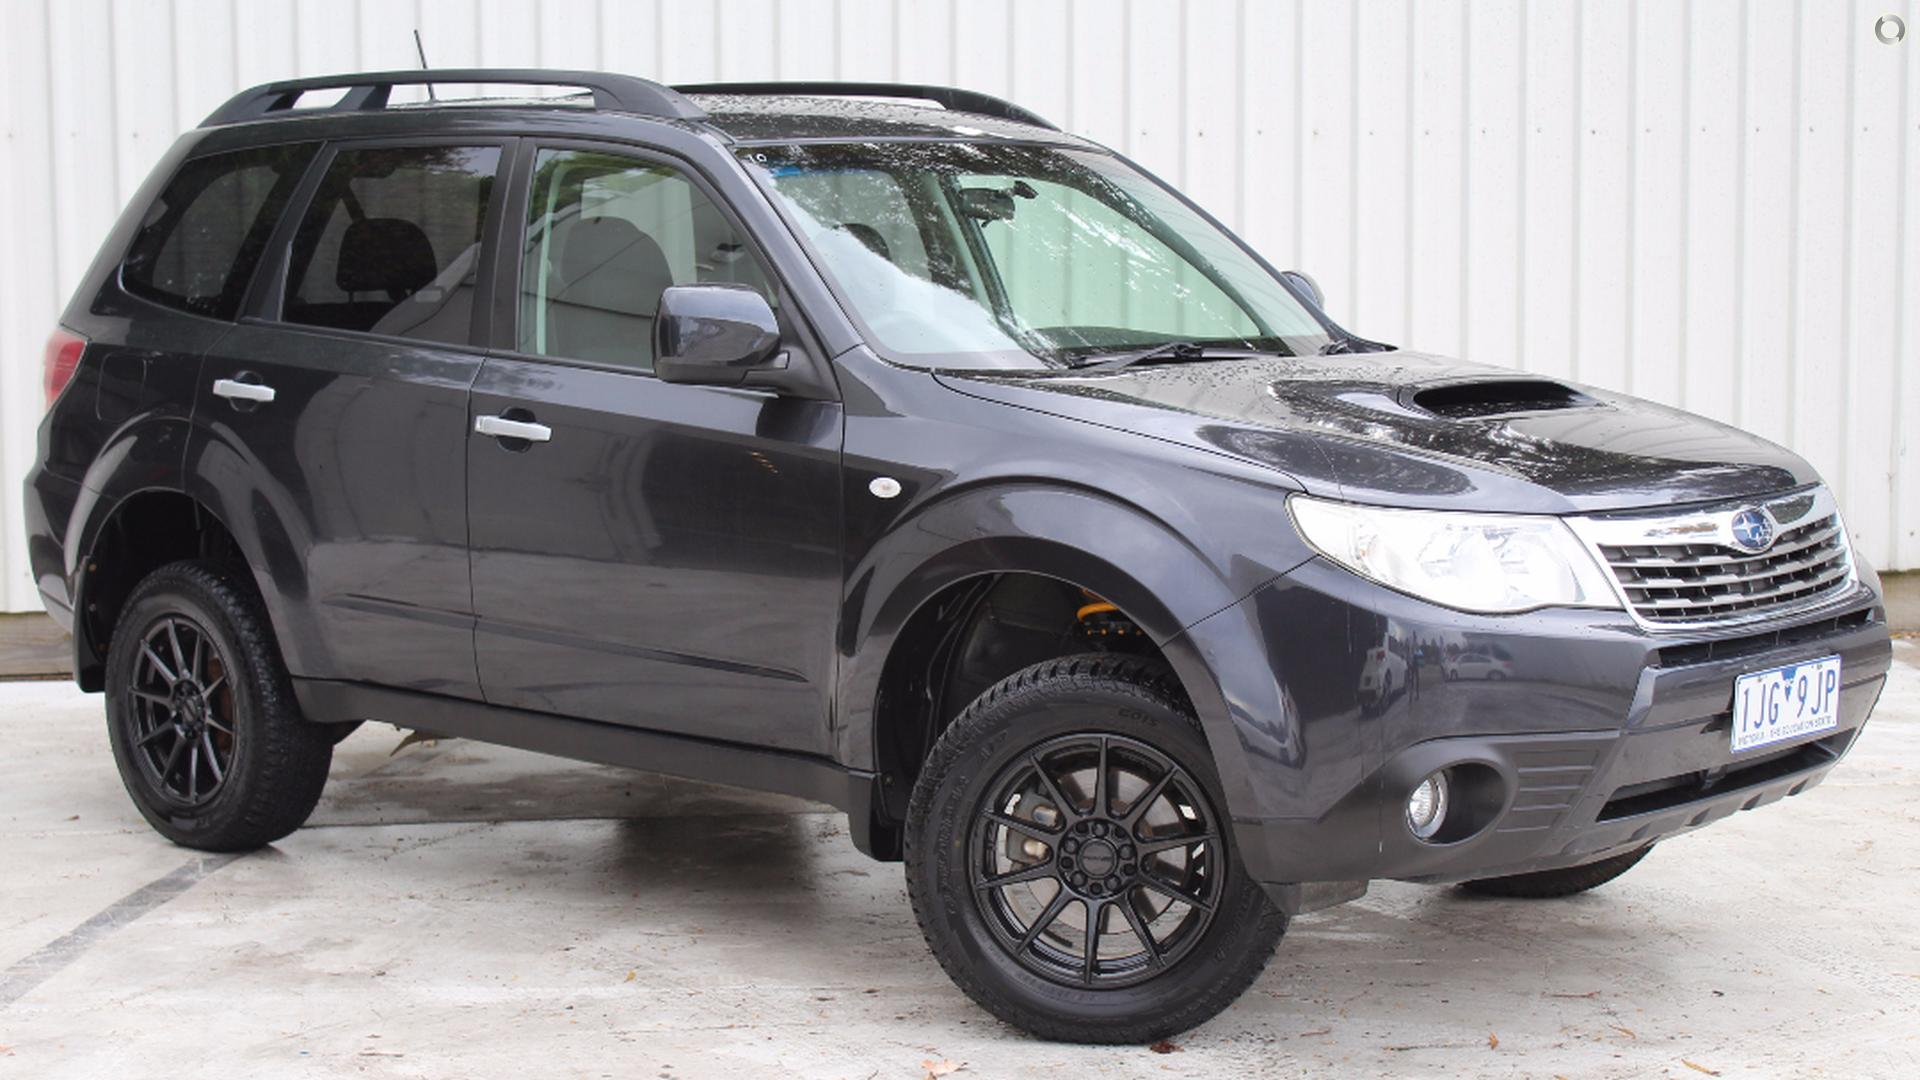 2010 Subaru Forester 2.0D S3